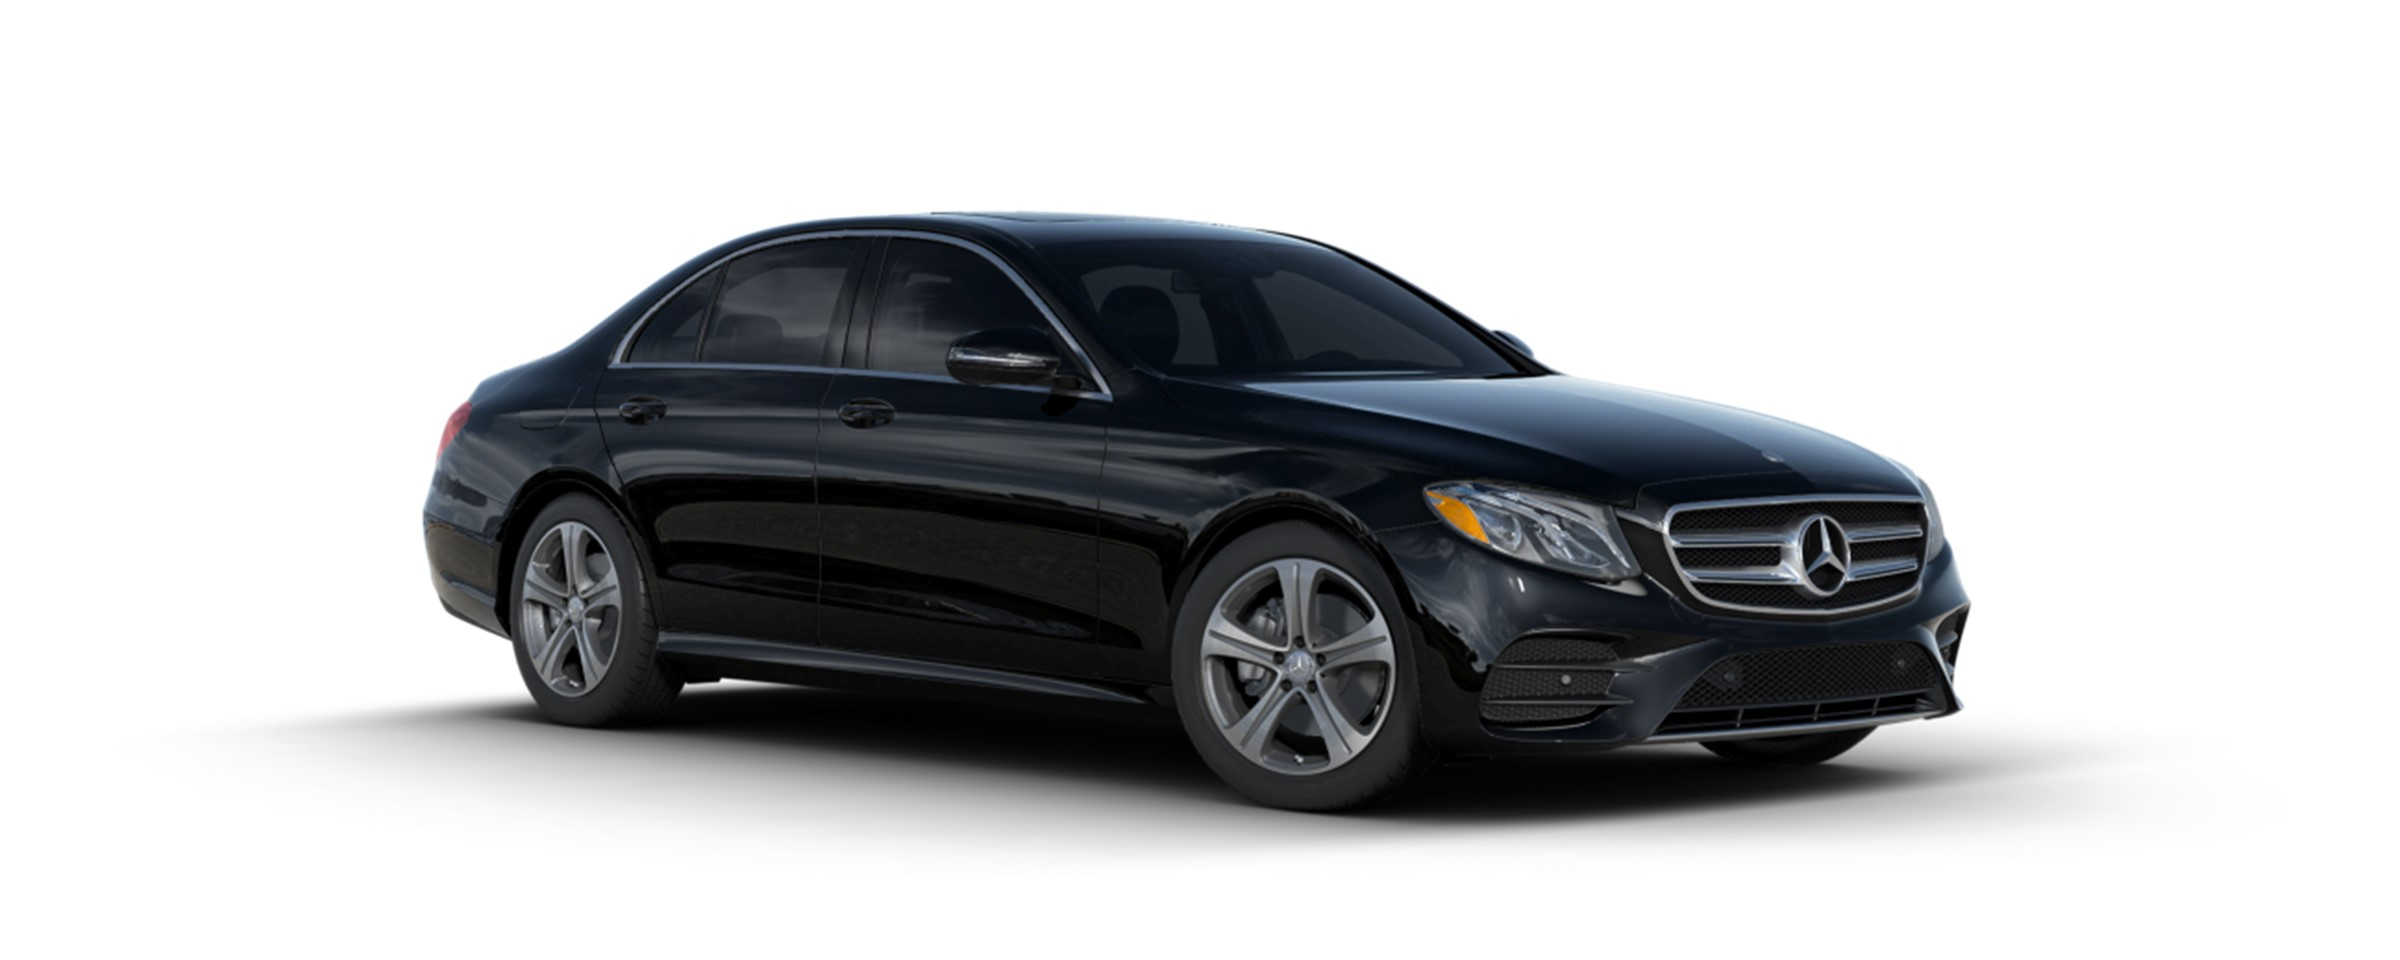 The all new mercedes benz e300 4matic baker motor company for All new mercedes benz